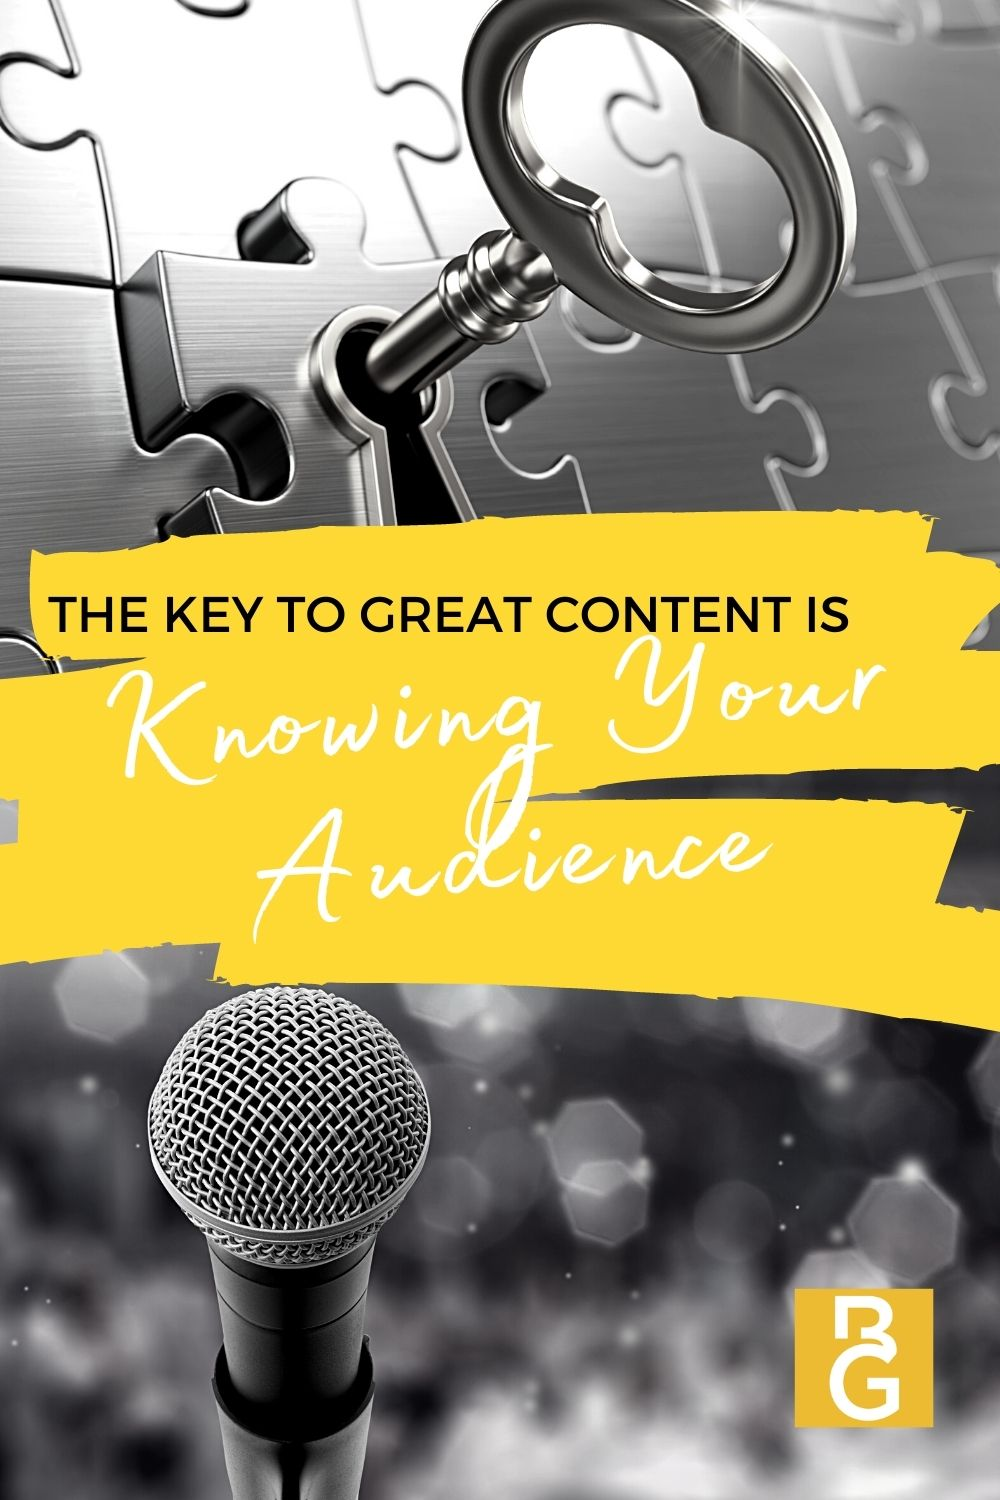 The Key To Great Content Is Knowing Your Audience